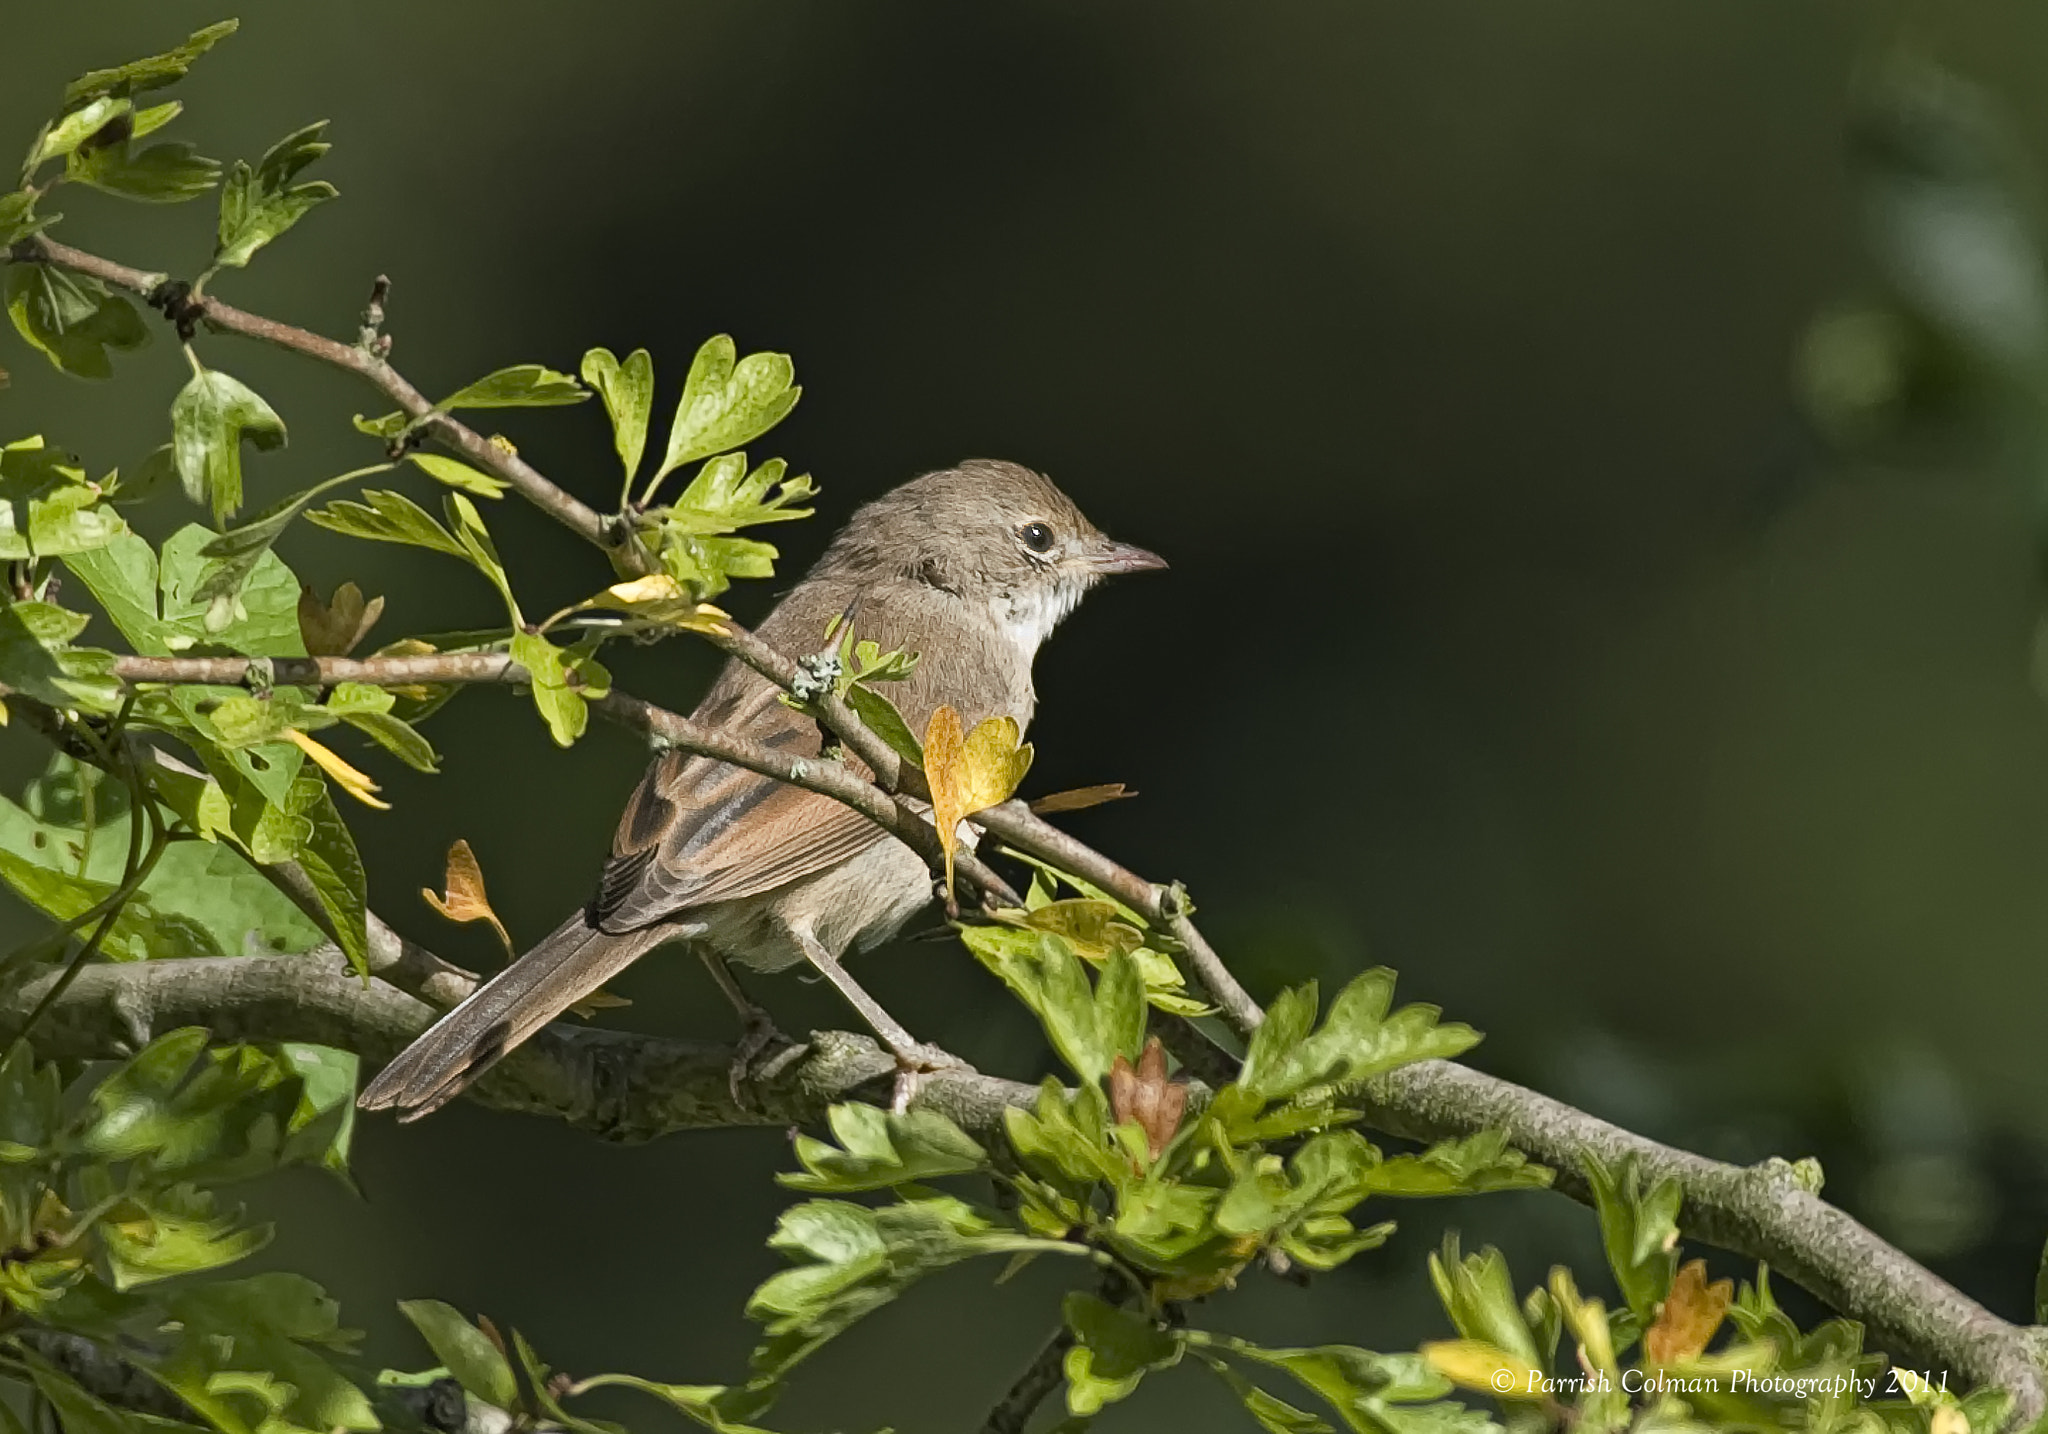 Photograph Whitethroat by Parrish Colman on 500px